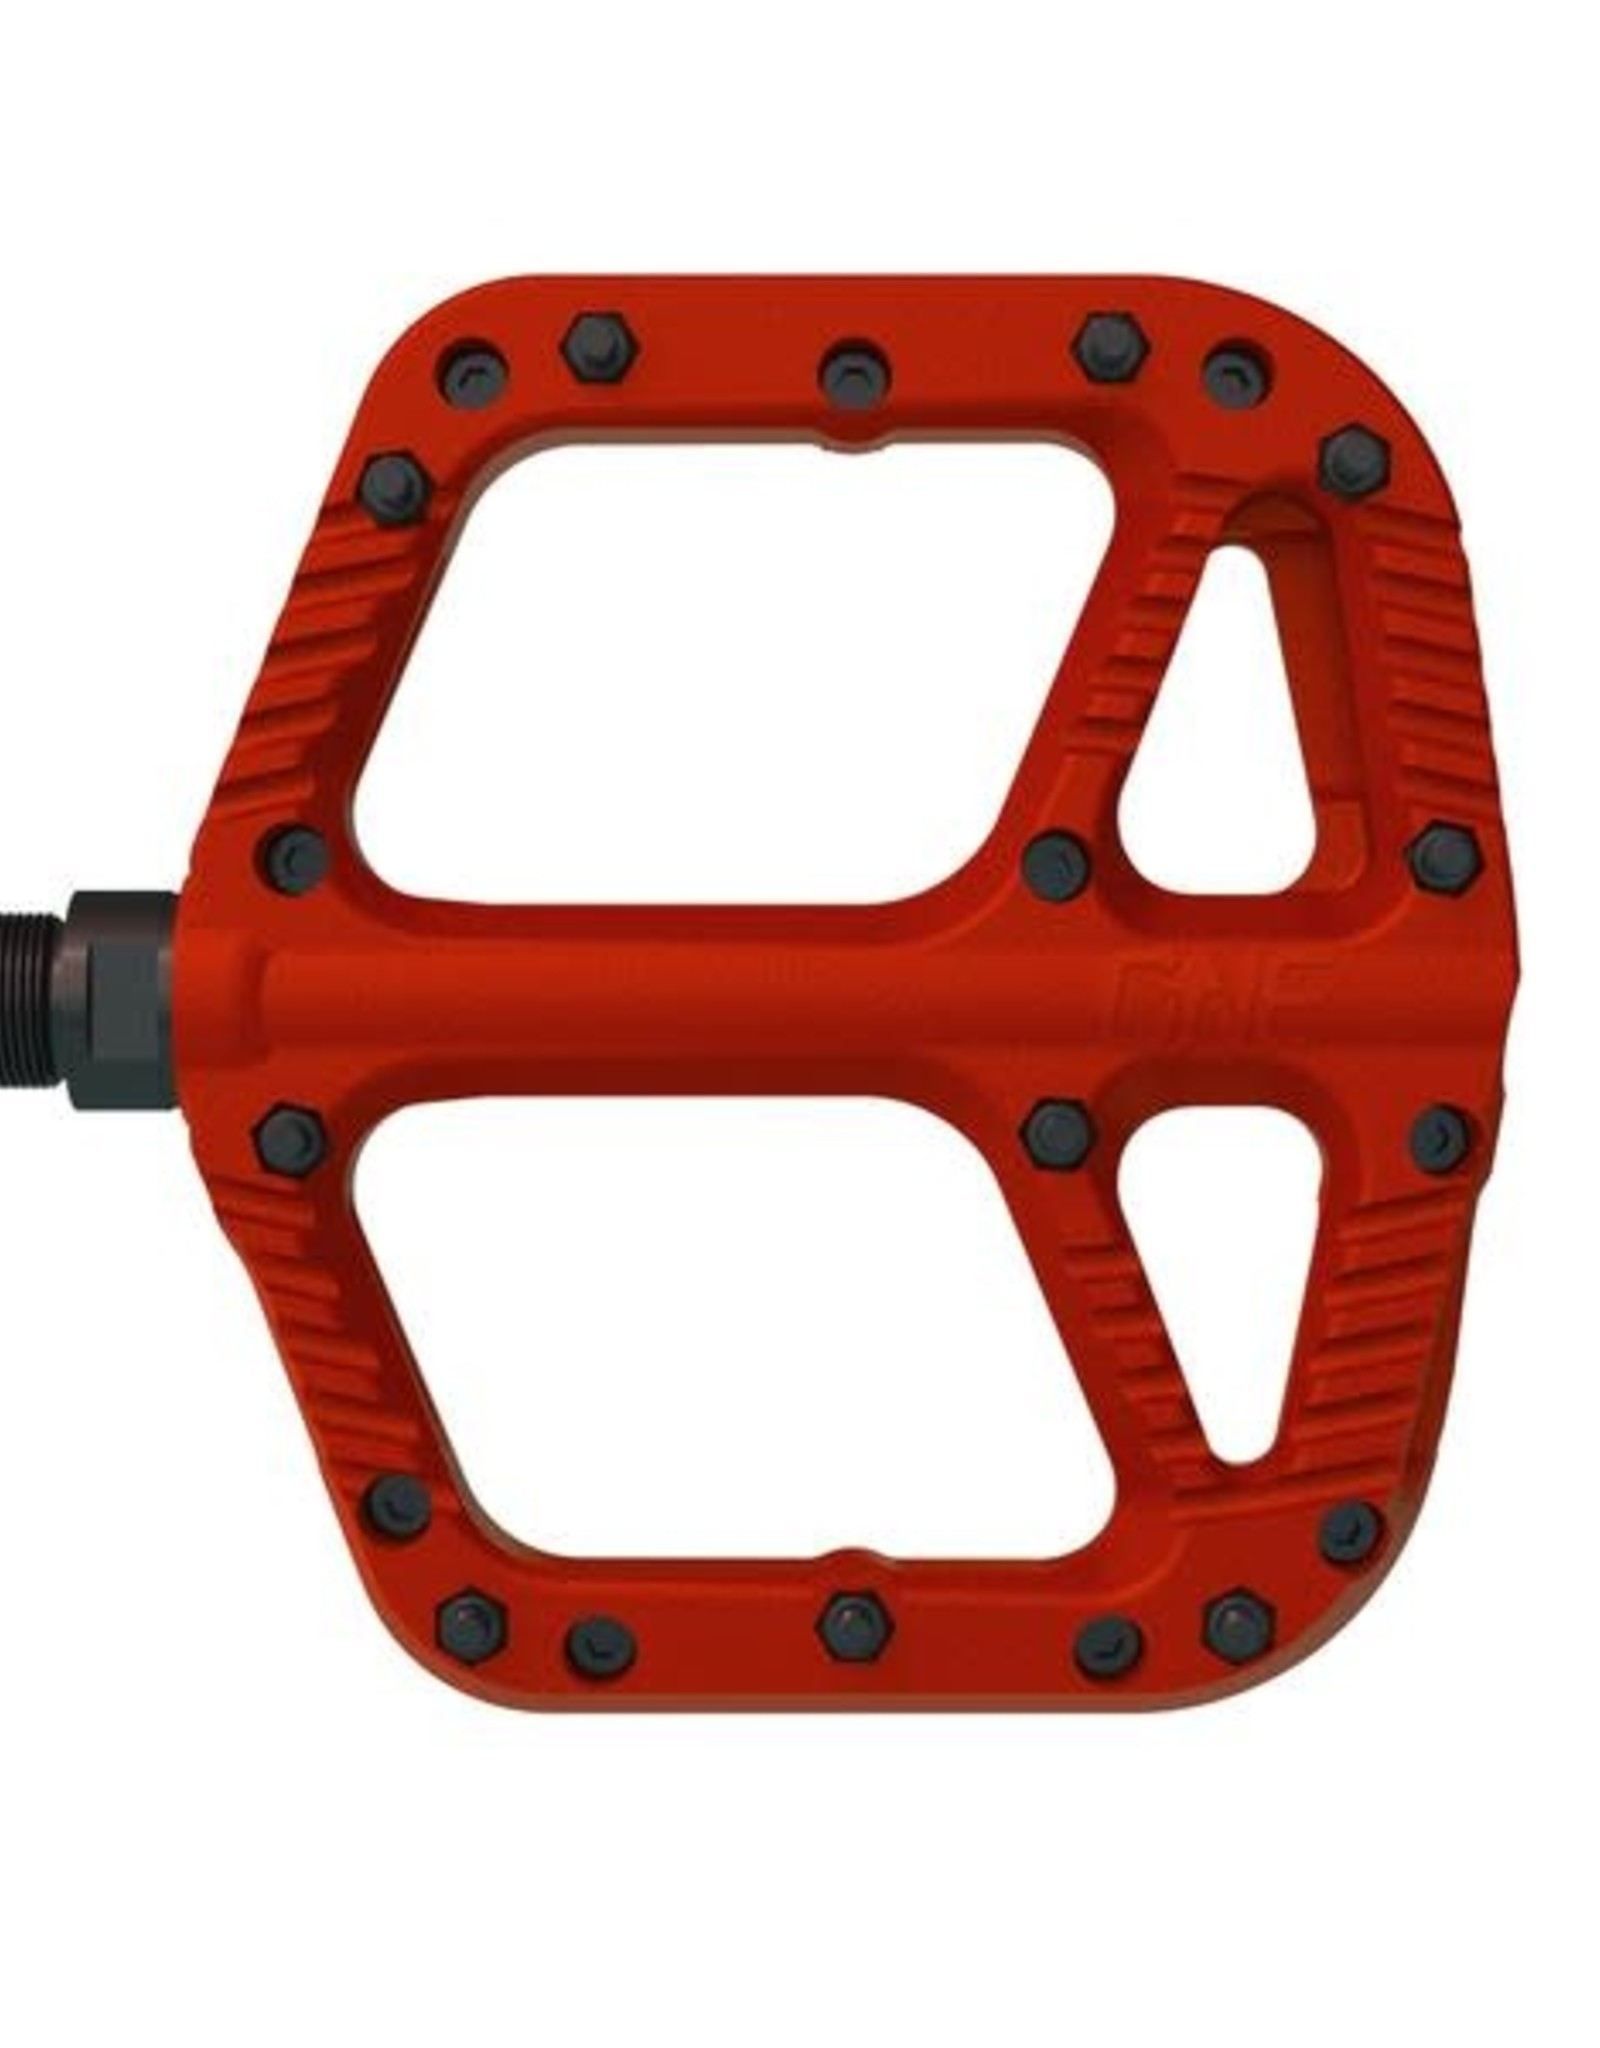 OneUp Components OneUp Composite Pedals